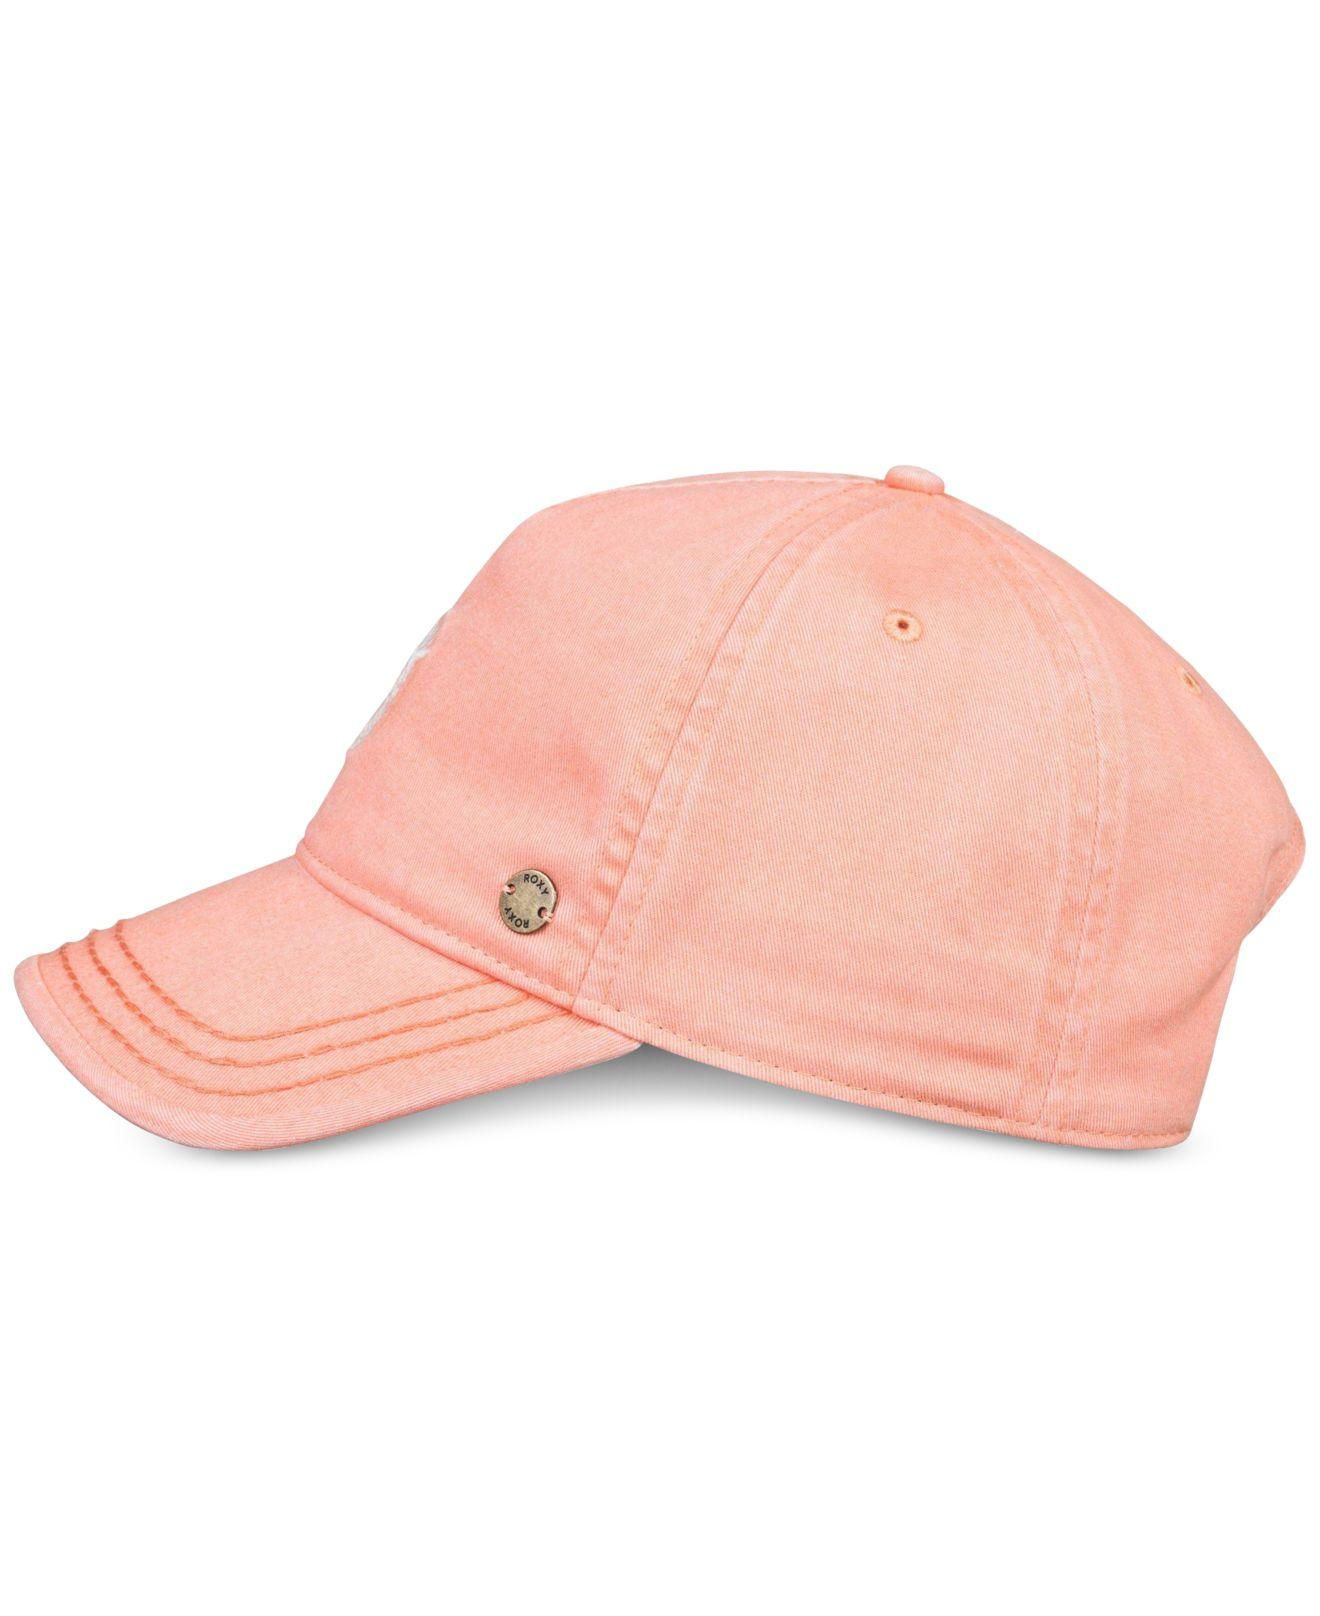 e5b9a7b1bf6 Lyst - Roxy Juniors  Next Level Cotton Pineapple Cap in Pink